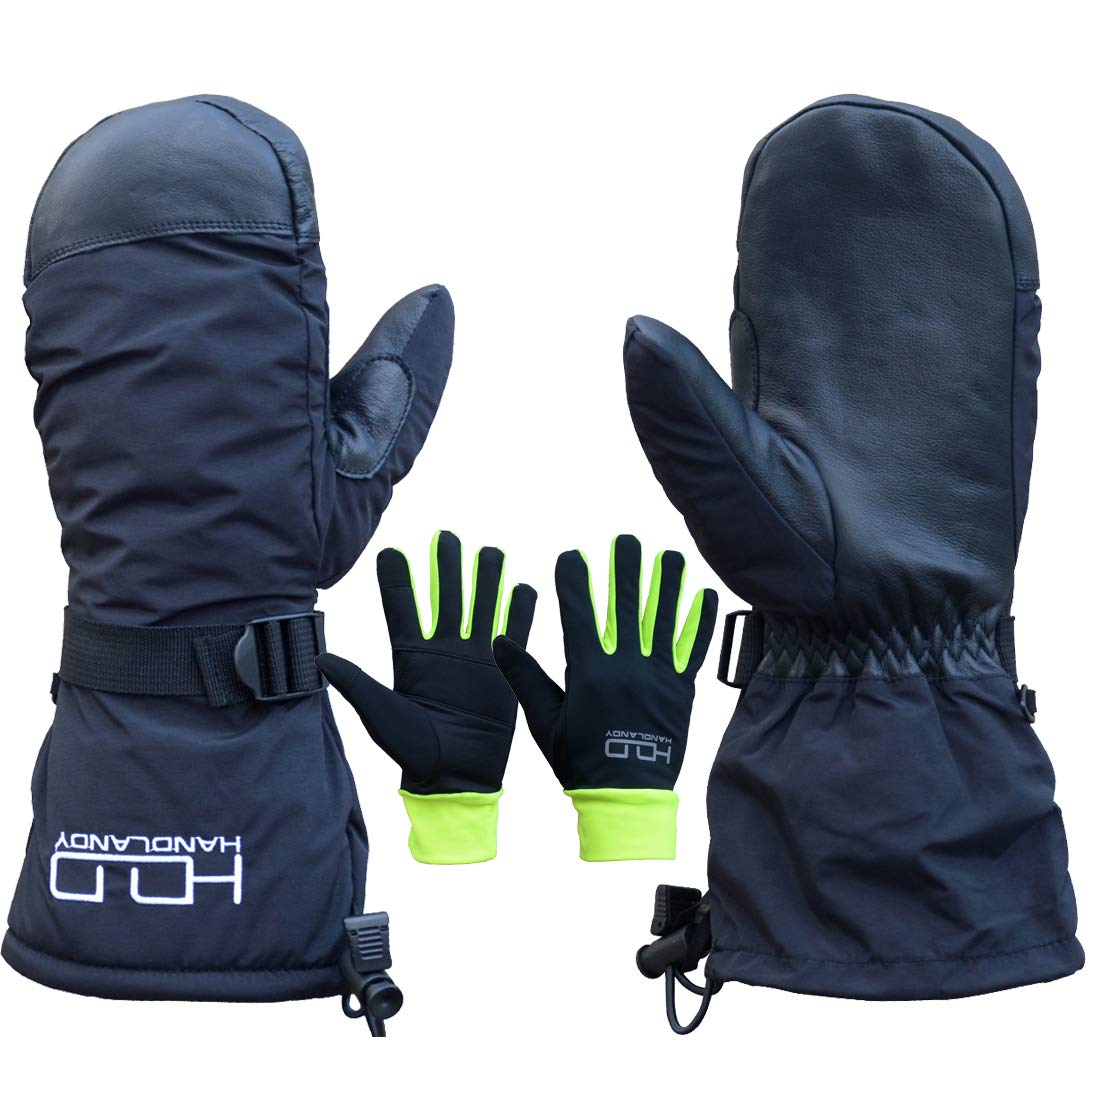 Euglove Ski Mittens,Womens//Mens Windproof Winter Cowskin Palm Gloves with 3M Thinsulate Insulation,Idea for Winter Sports